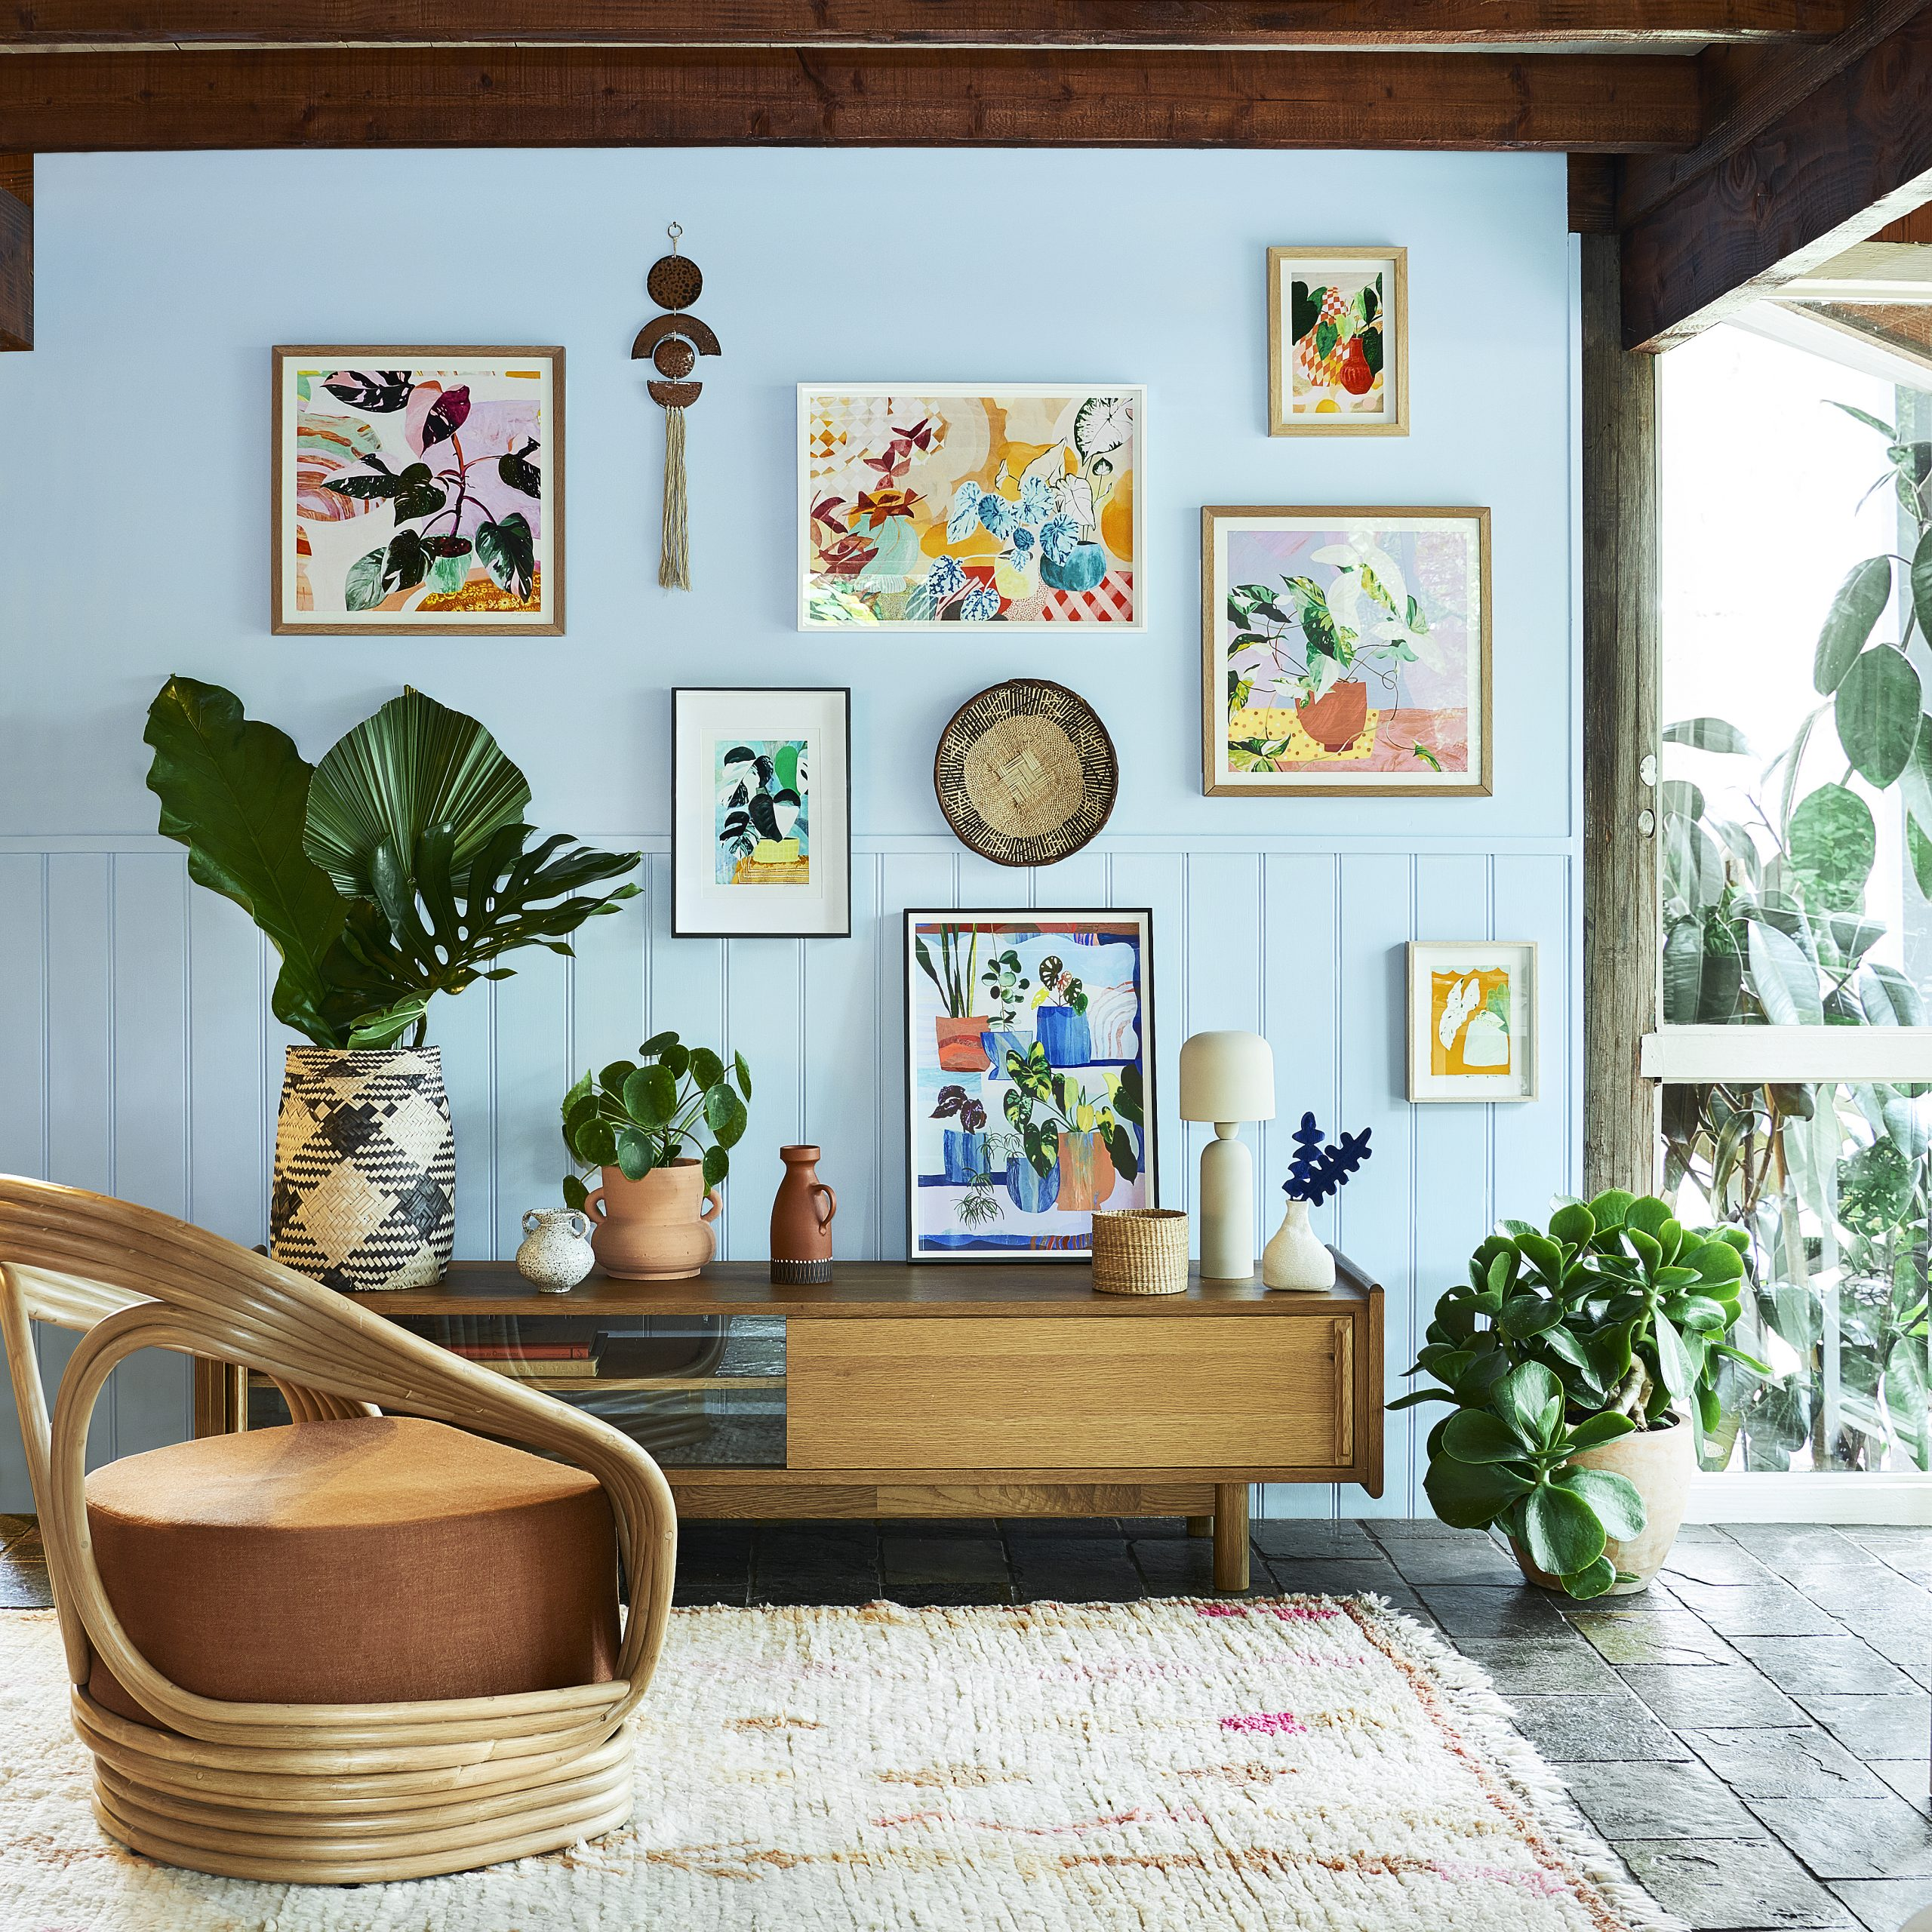 gallery-wall-image